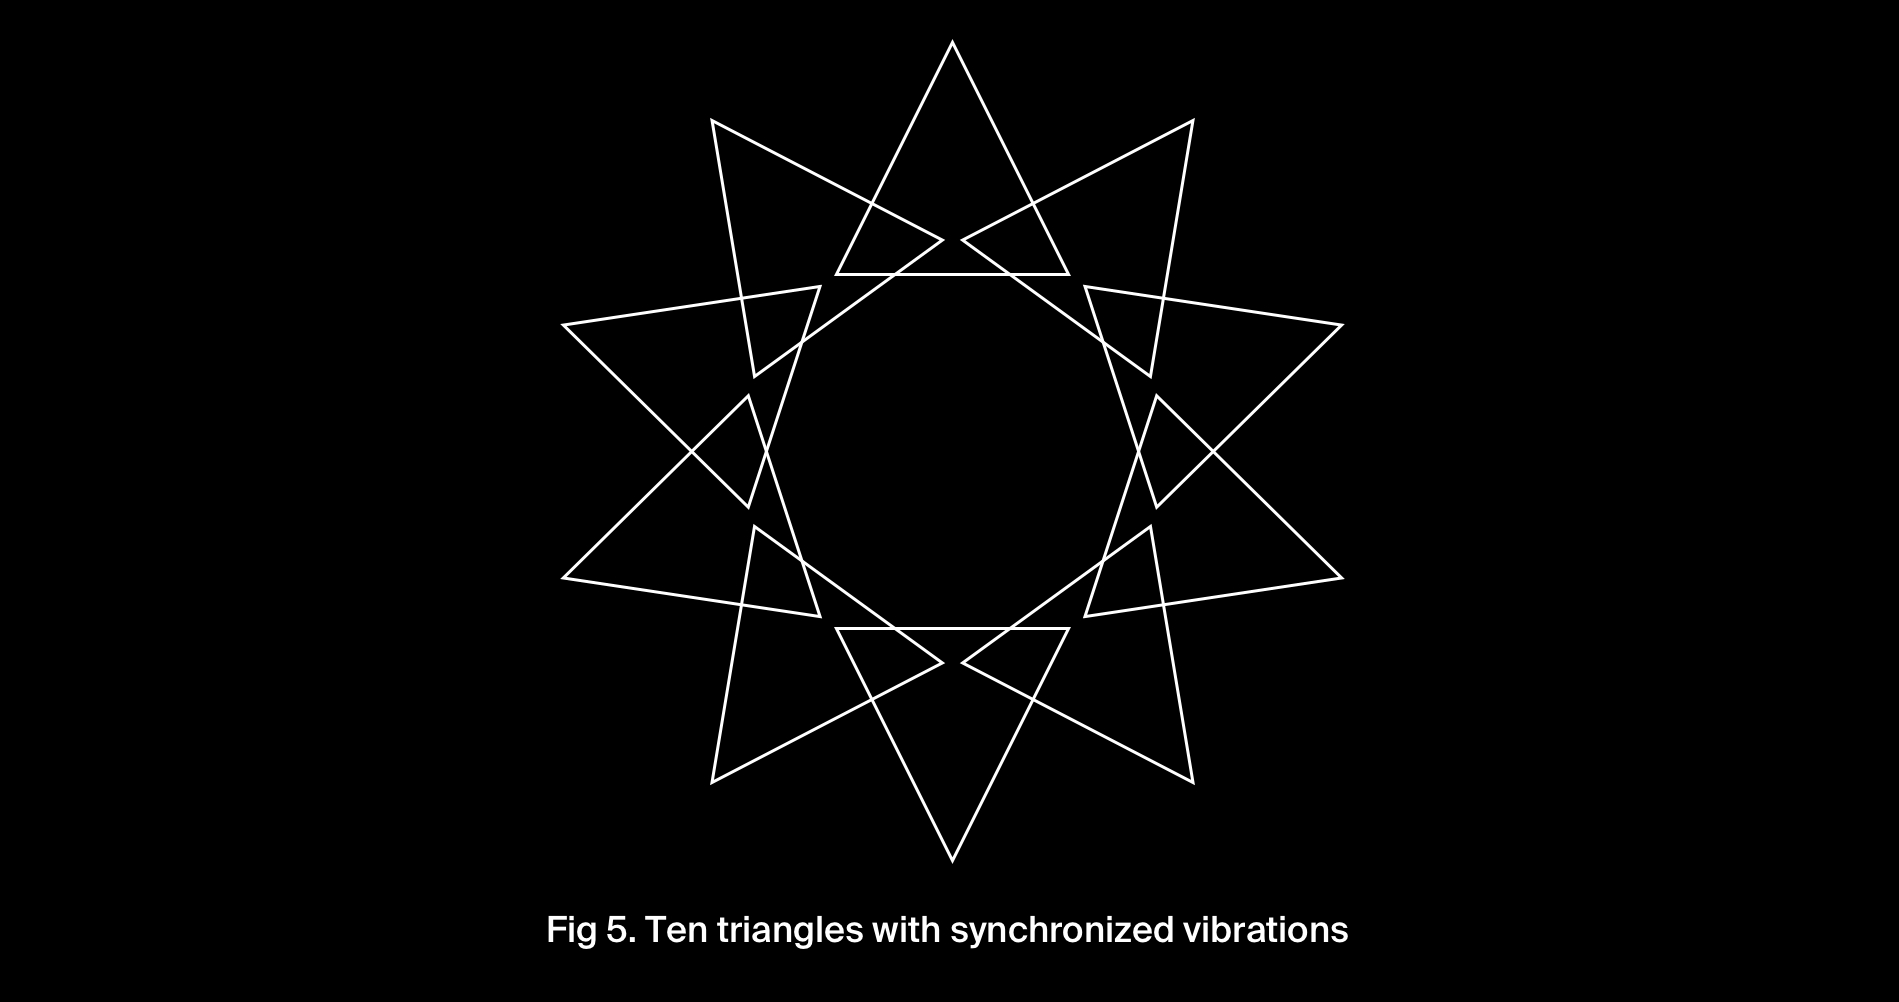 Fig 5. Ten triangles with synchronized vibrations